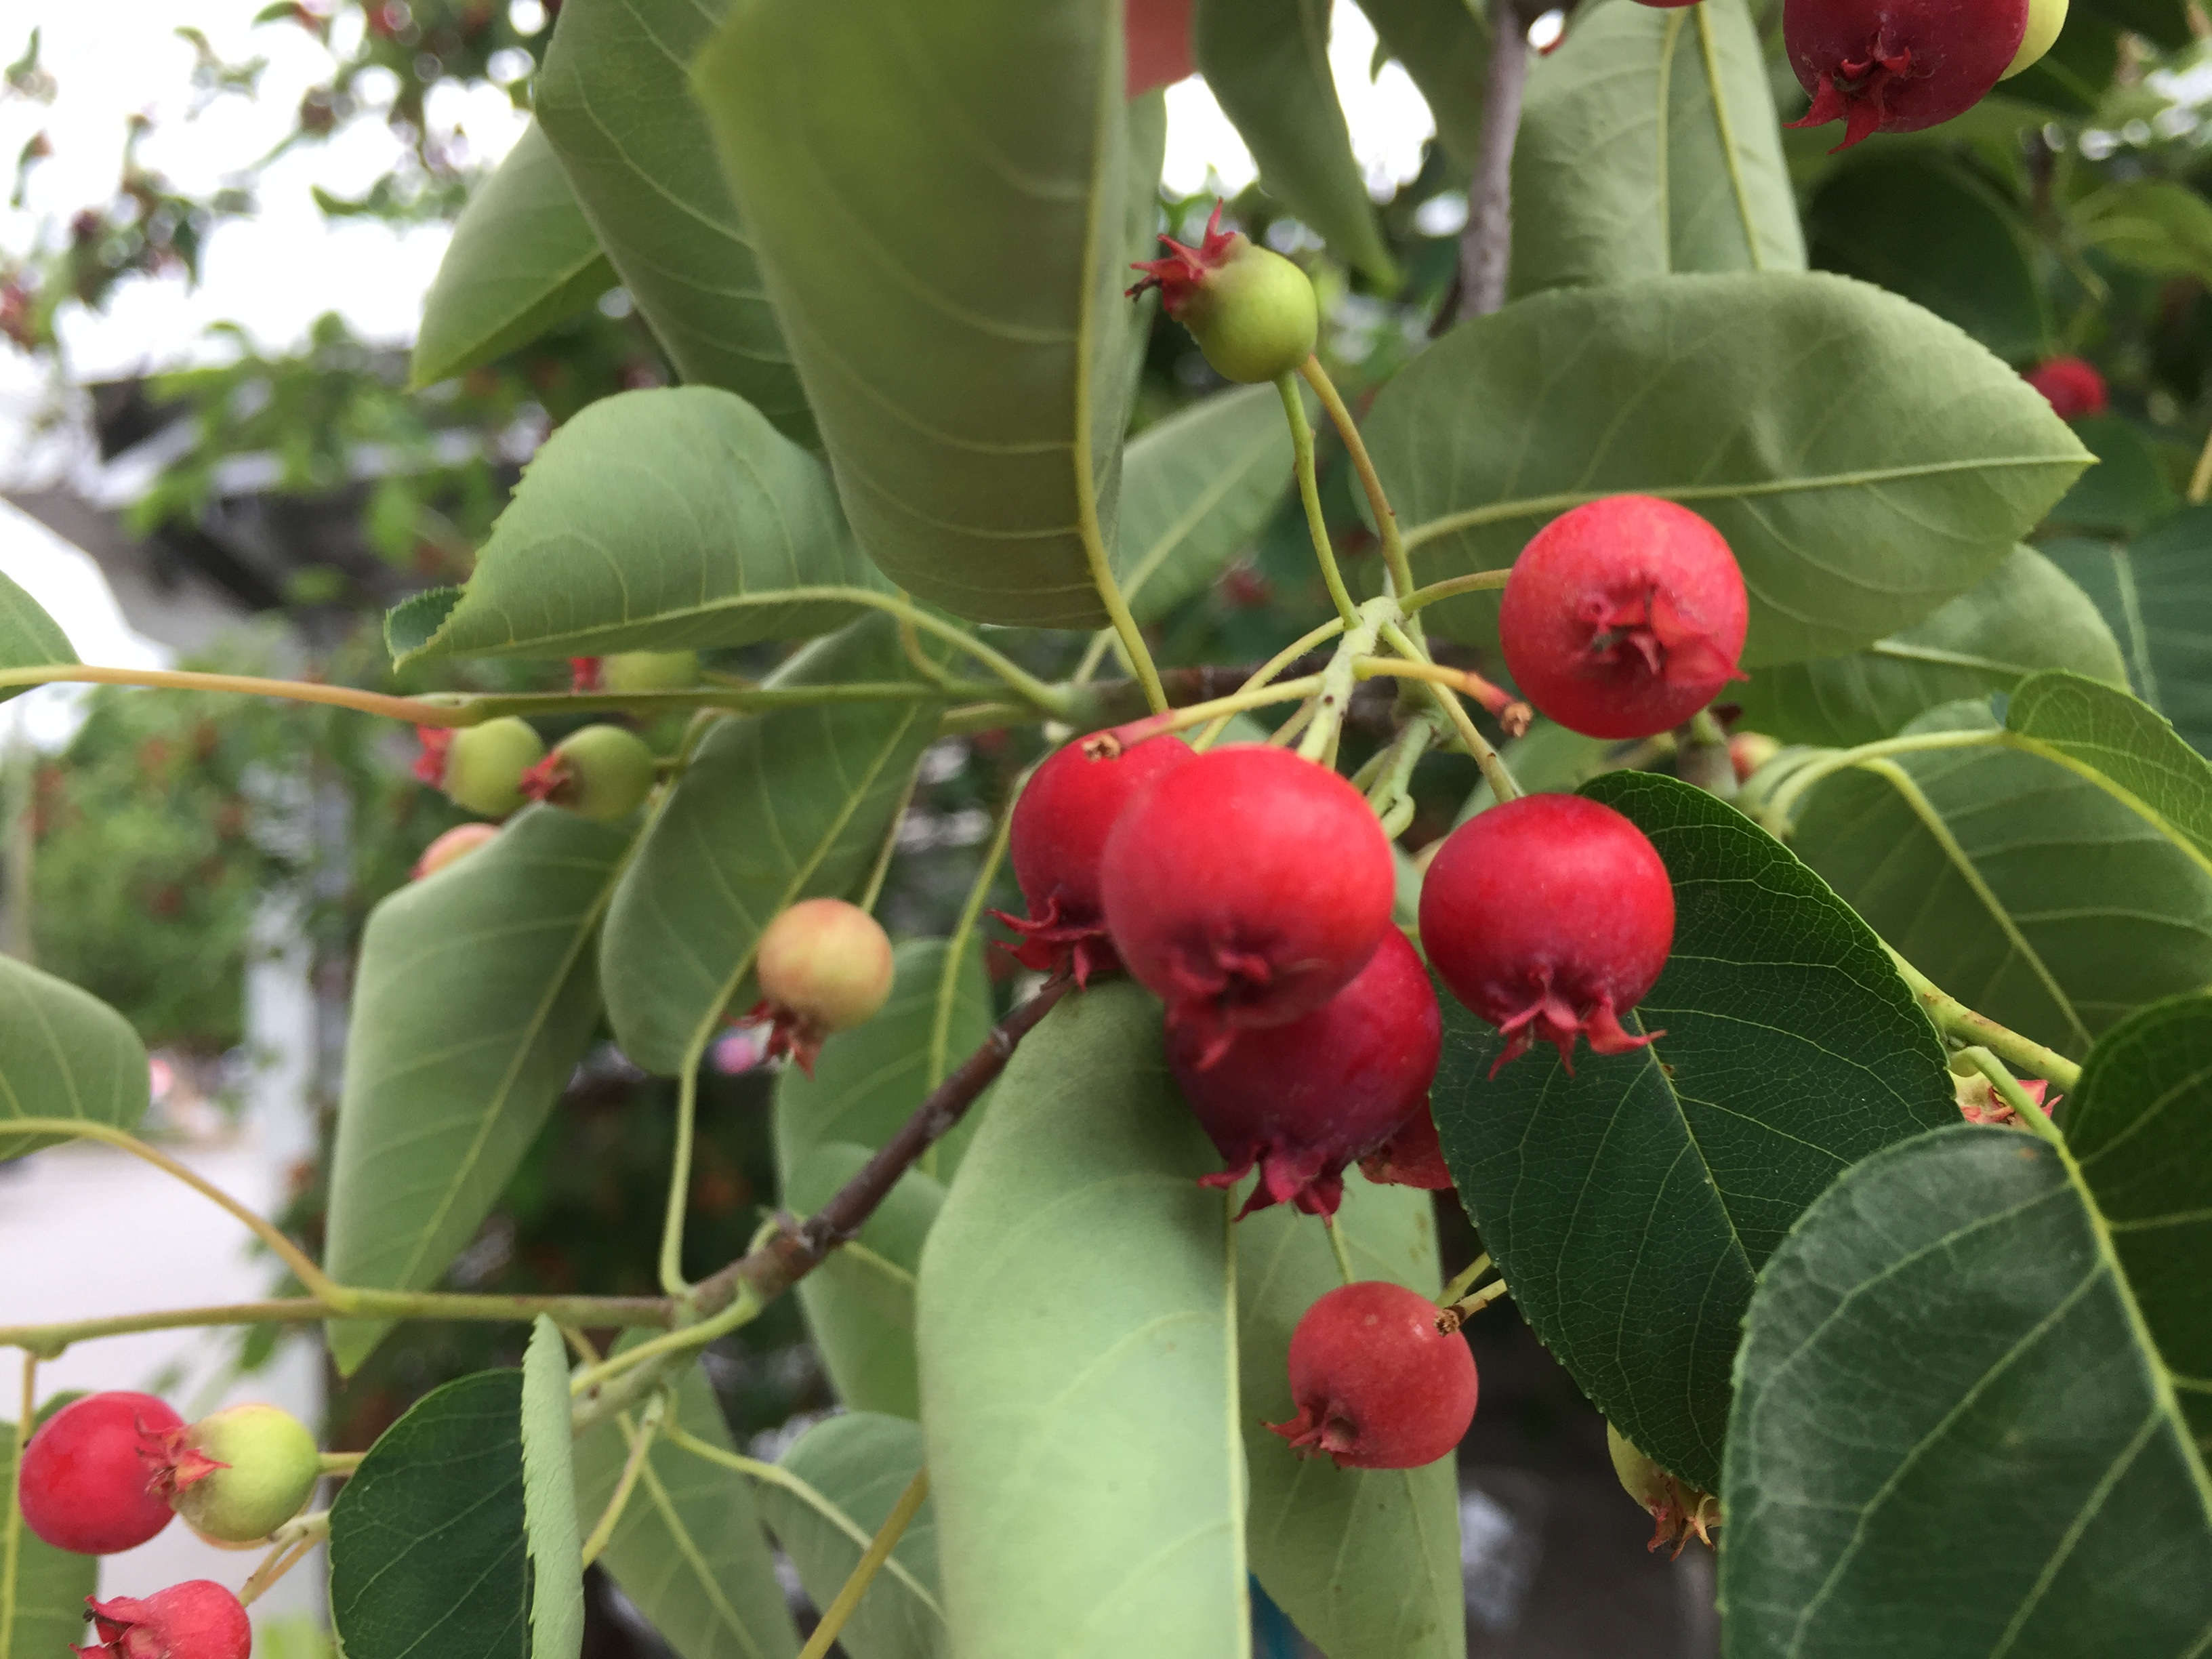 Serviceberry or not general fruit growing growing fruit img1365g3264x2448 163 mb thecheapjerseys Image collections